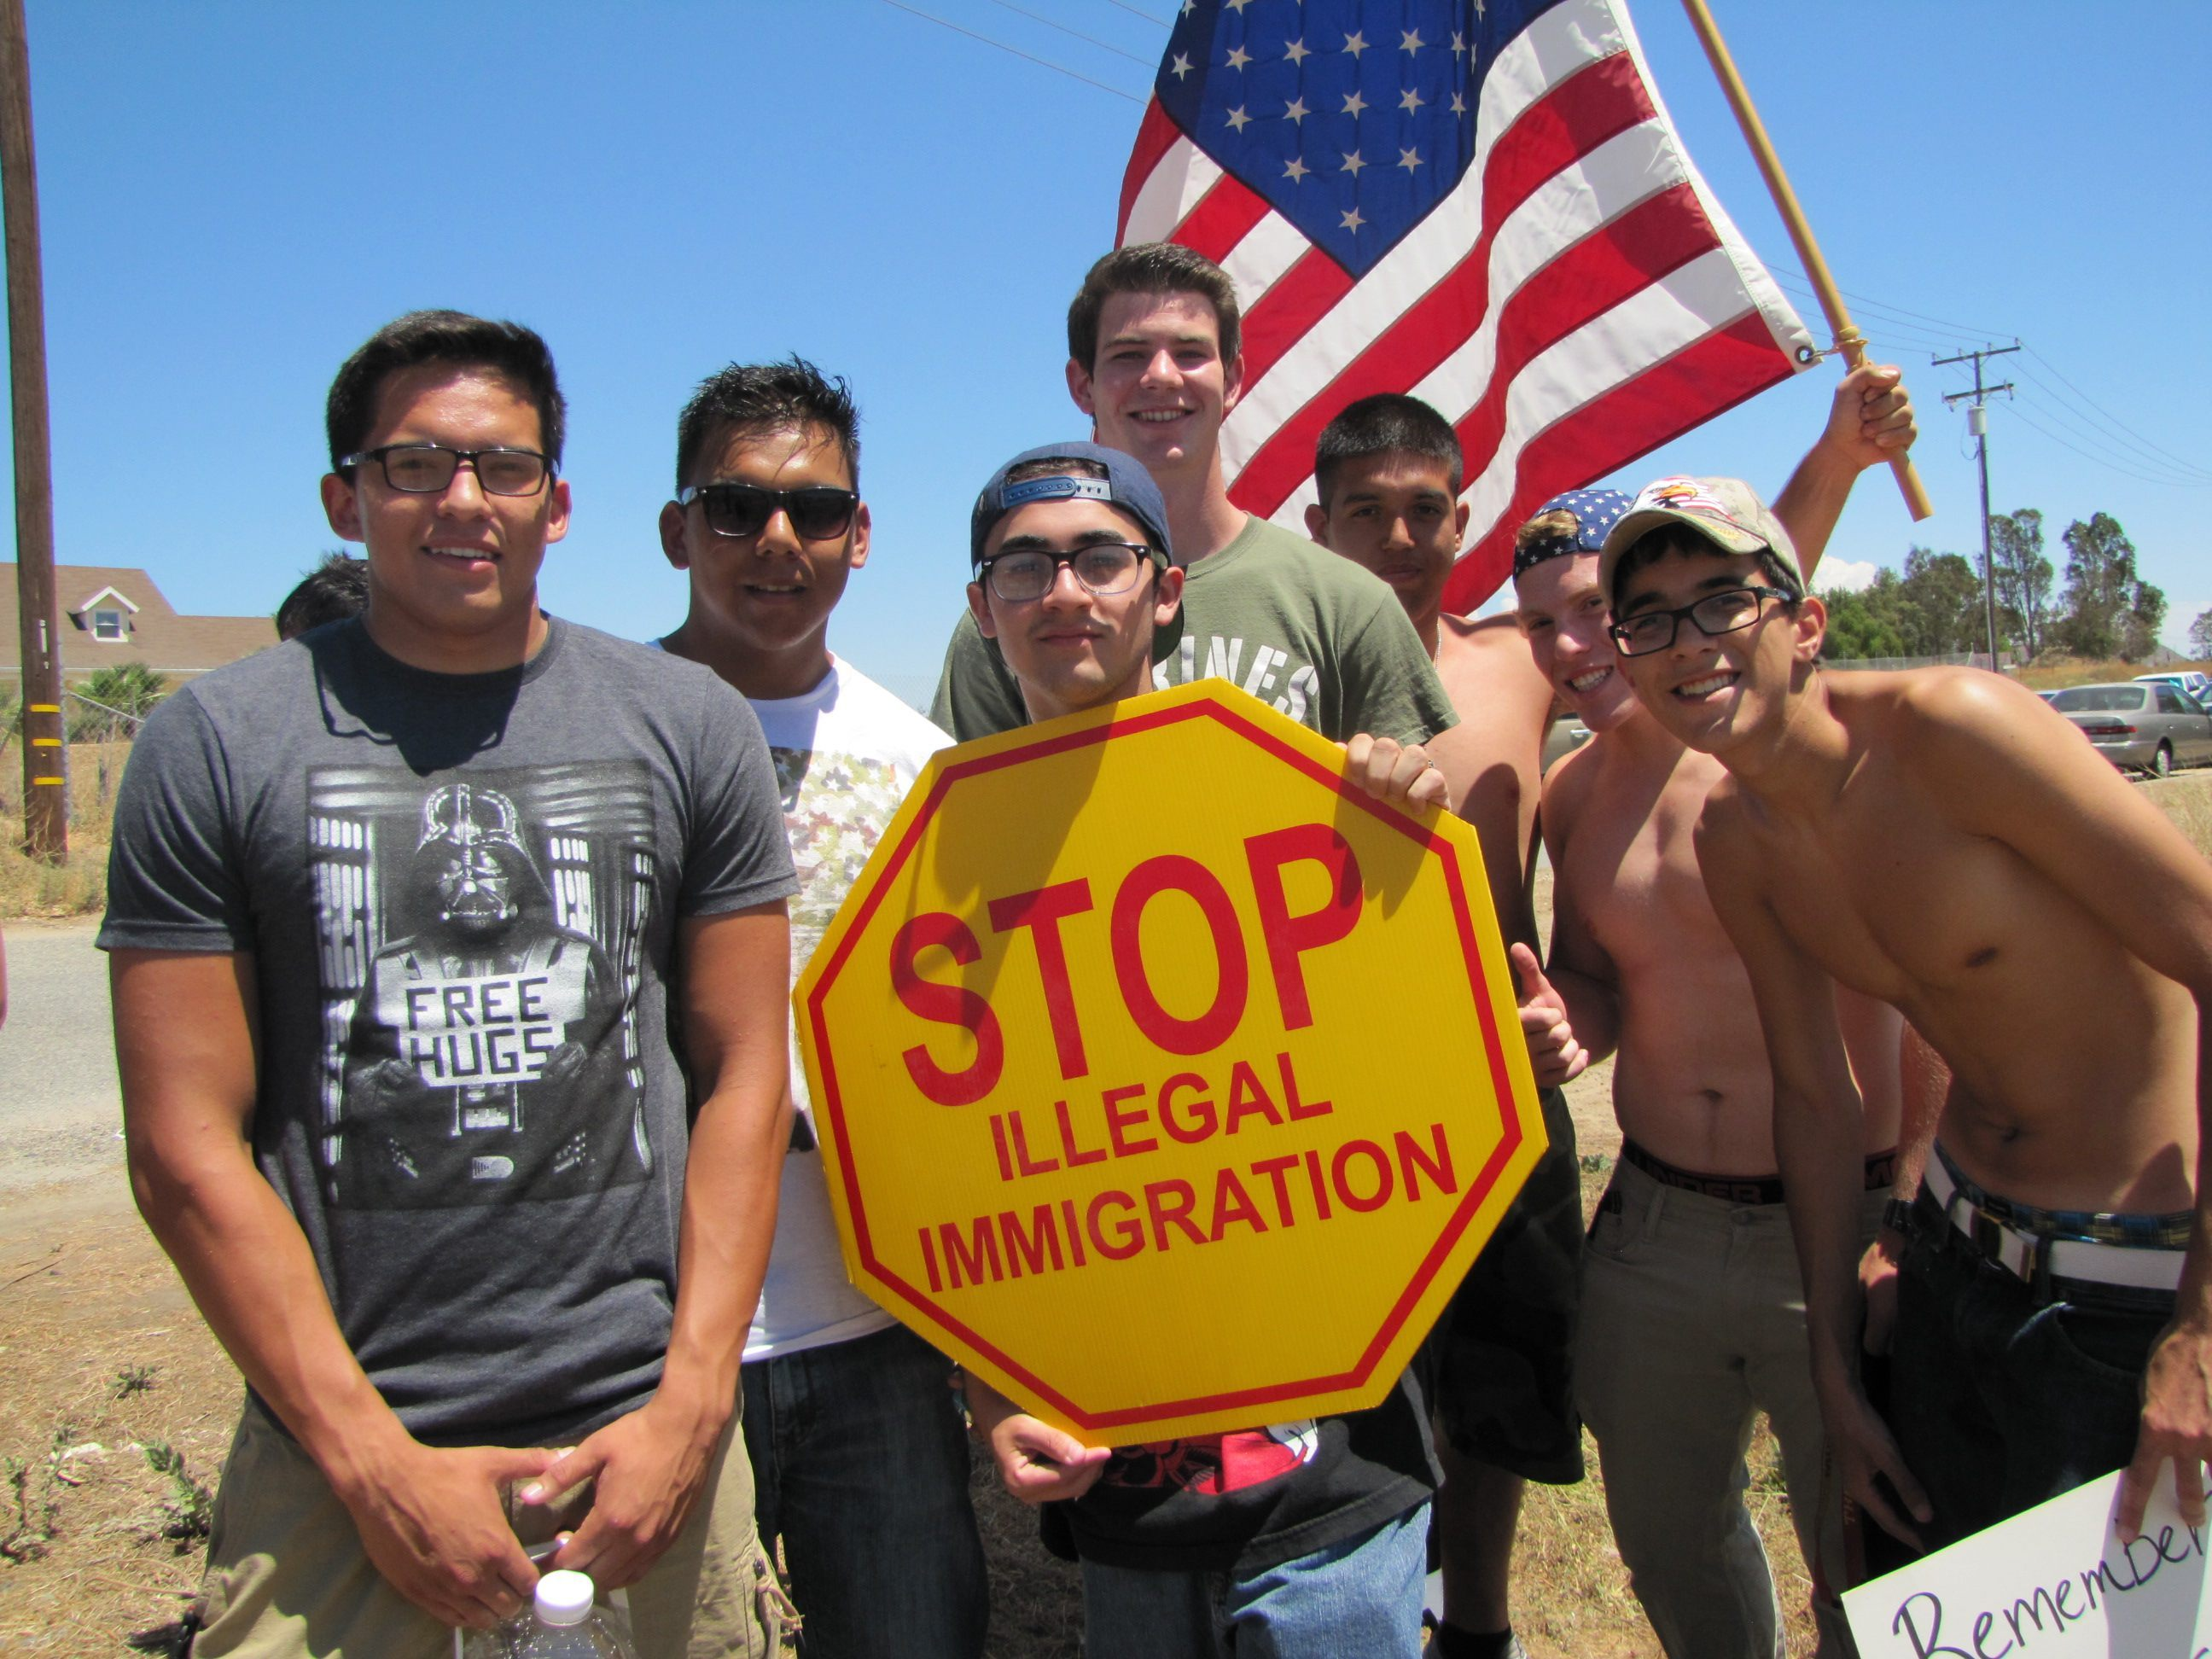 Hispanic Americans protest illegal immigration